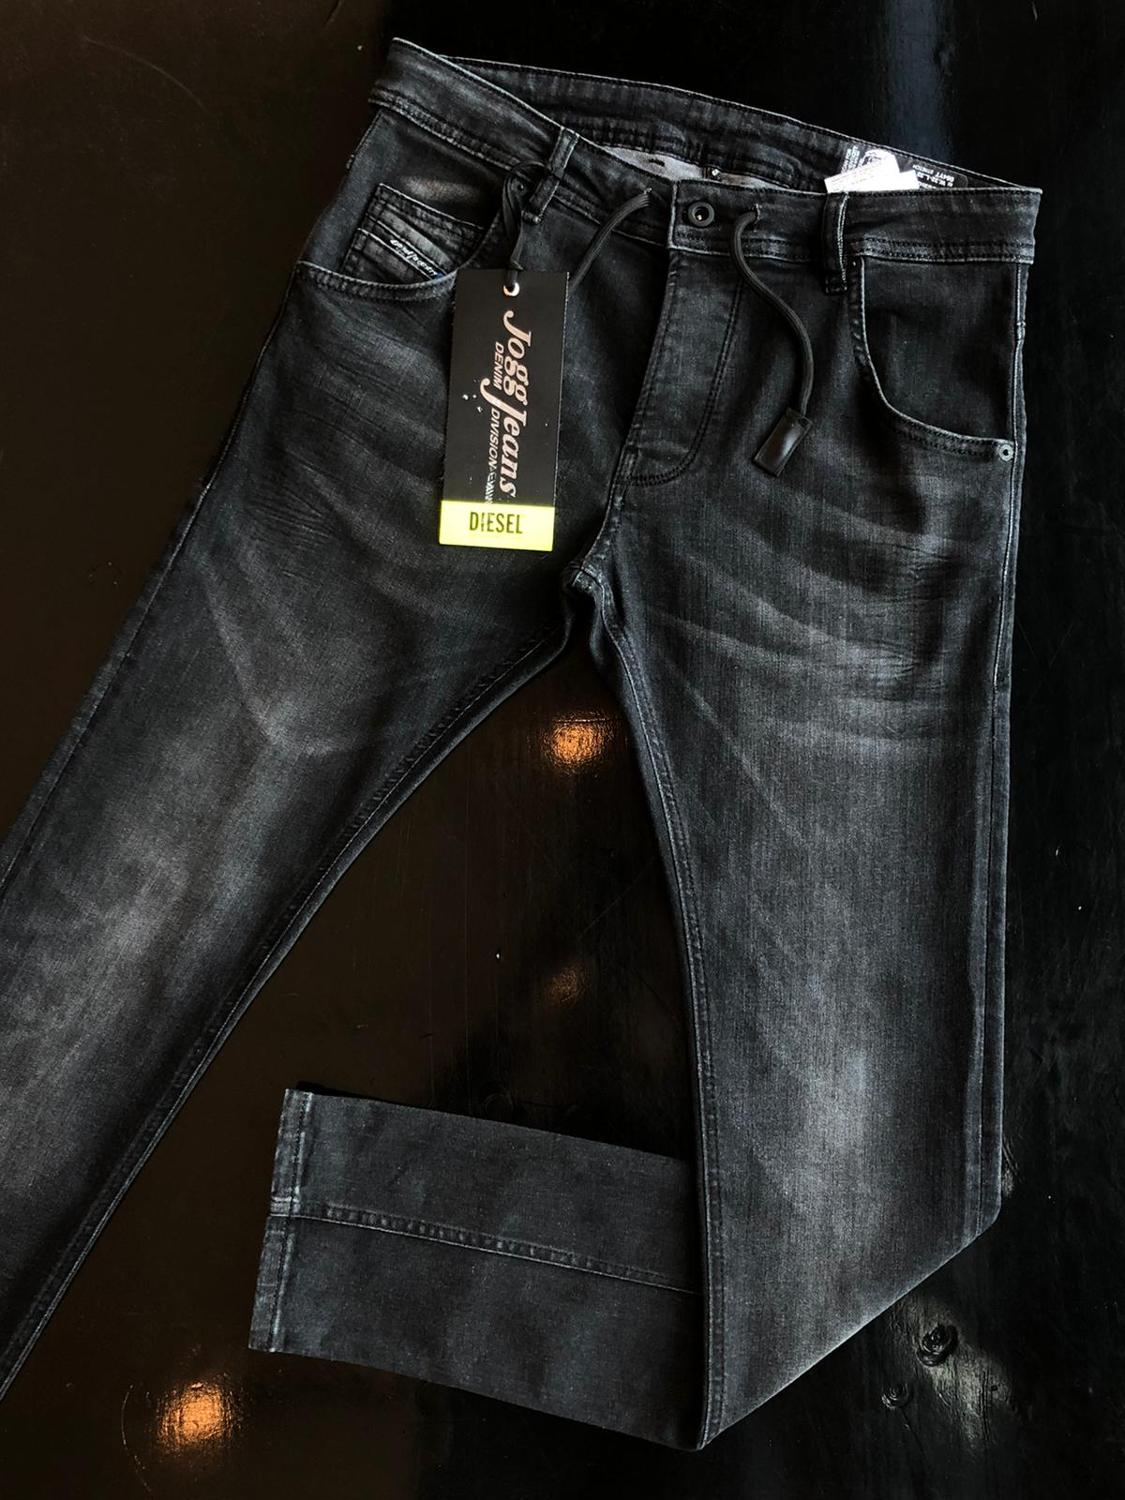 Jeans High Quality Black  Diesel Jeans Men New Session Jeans For Men With Slim Fit Luxury Pants